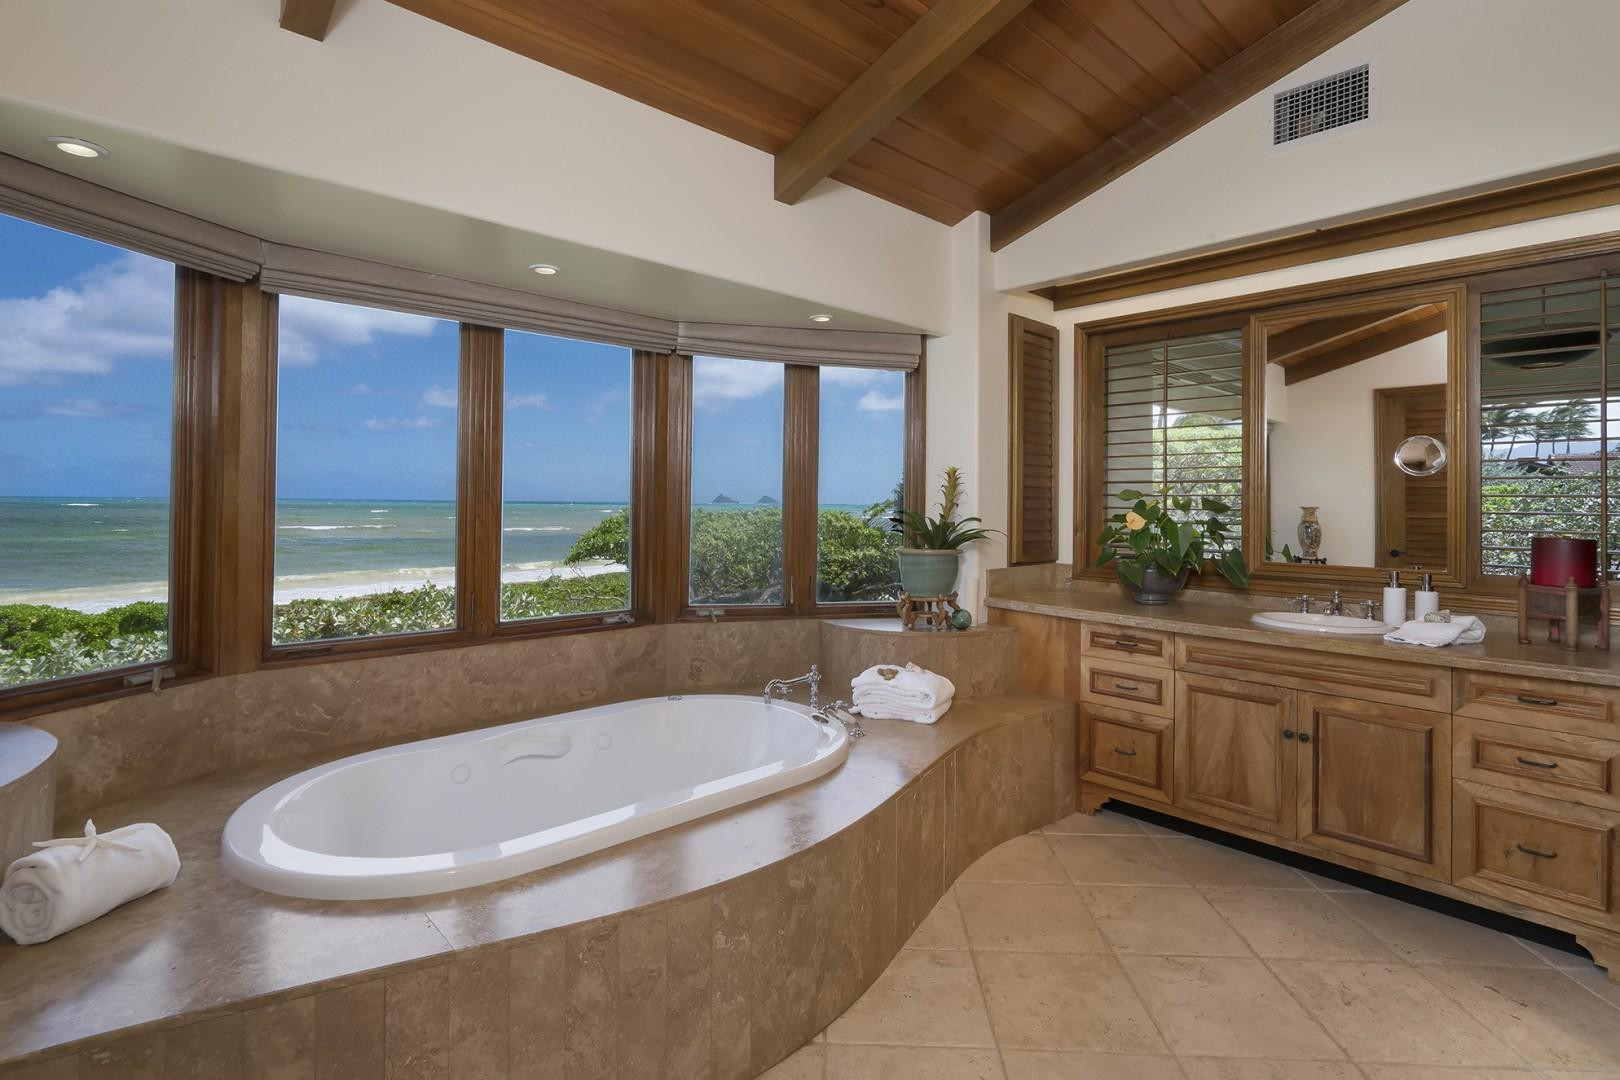 Main house: Master Bathroom with jetted tub and has walk in shower.